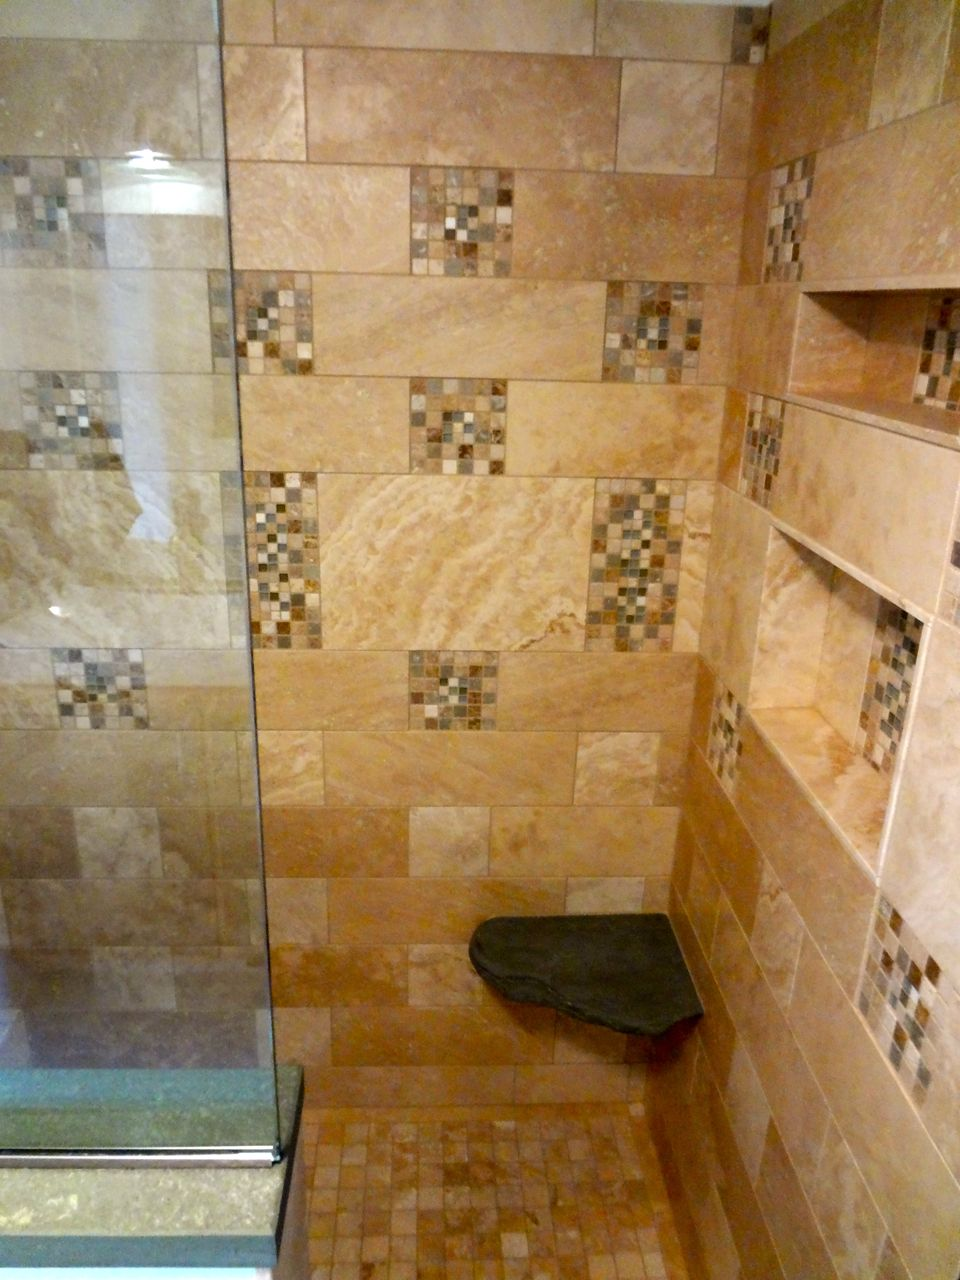 Floating Marble Shower Seat Contractor Talk Professional Construction And Remodeling Forum